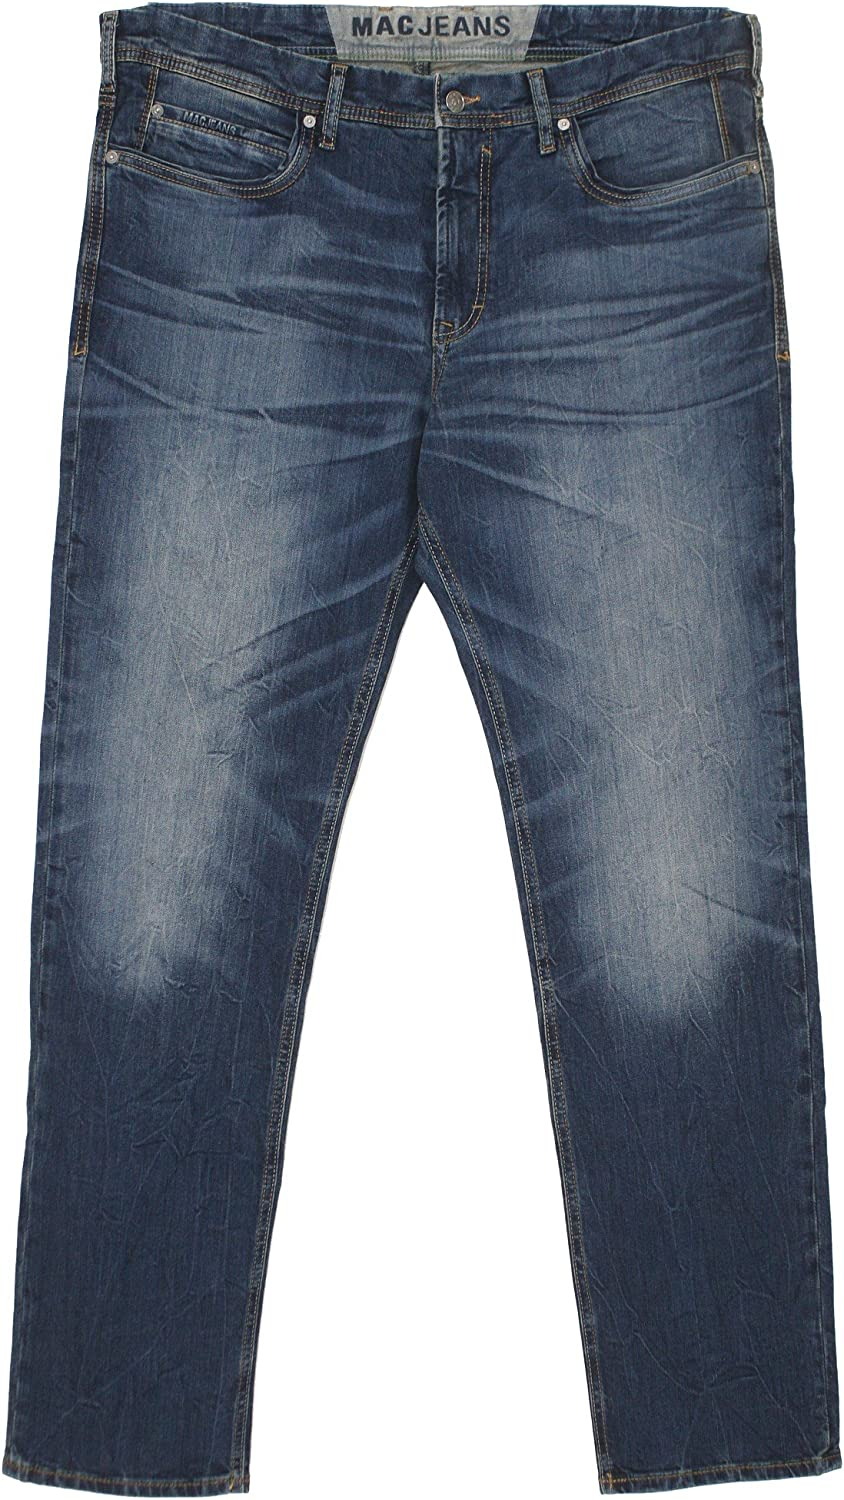 MAC Herren Jeans Ben Pipe Regular Fit Recycled Denim, Größe W35 L32;Farbe light authentic B013SZLKTS  Stimmt